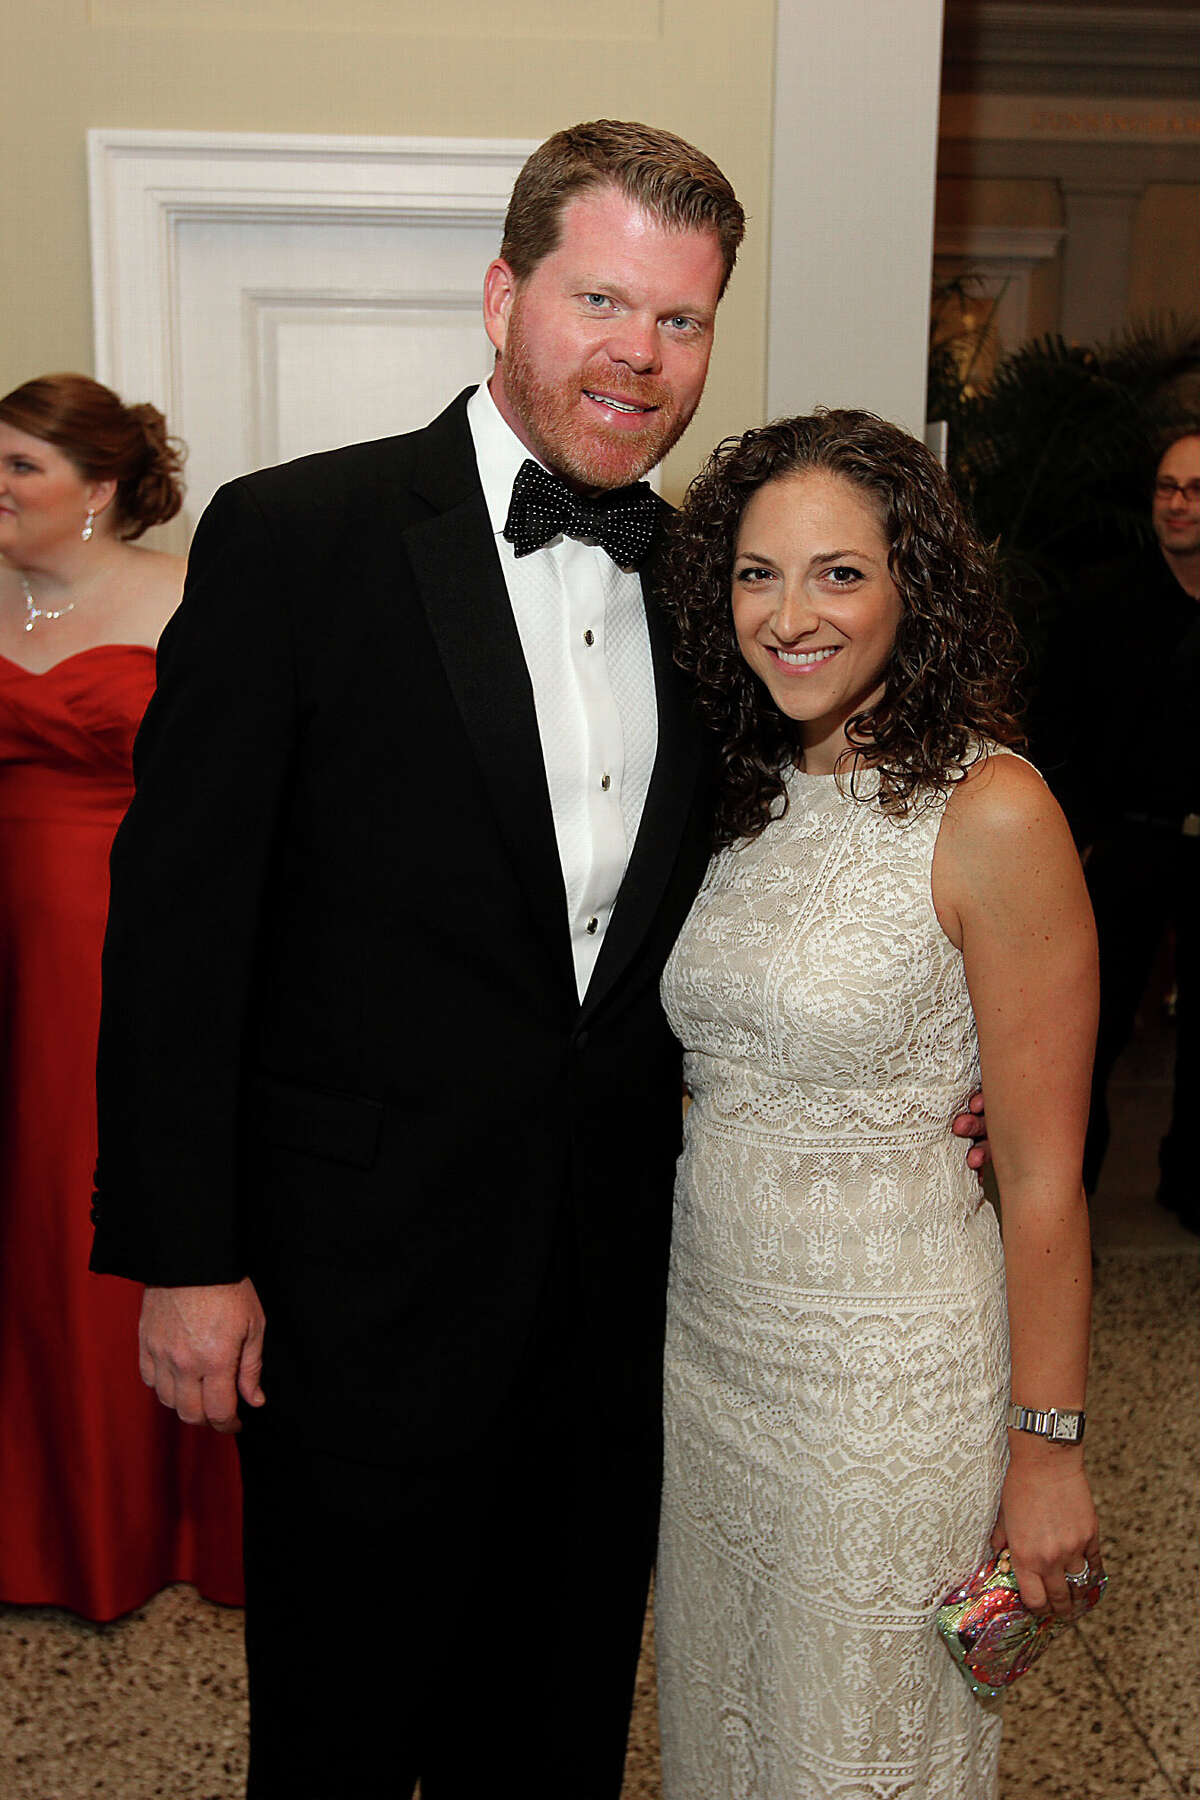 Were you Seen at the National Museum of Dance and Hall of Fame gala, A Tribute to the Copacabana, held at the museum in Saratoga Springs on Saturday, Aug. 10, 2013?